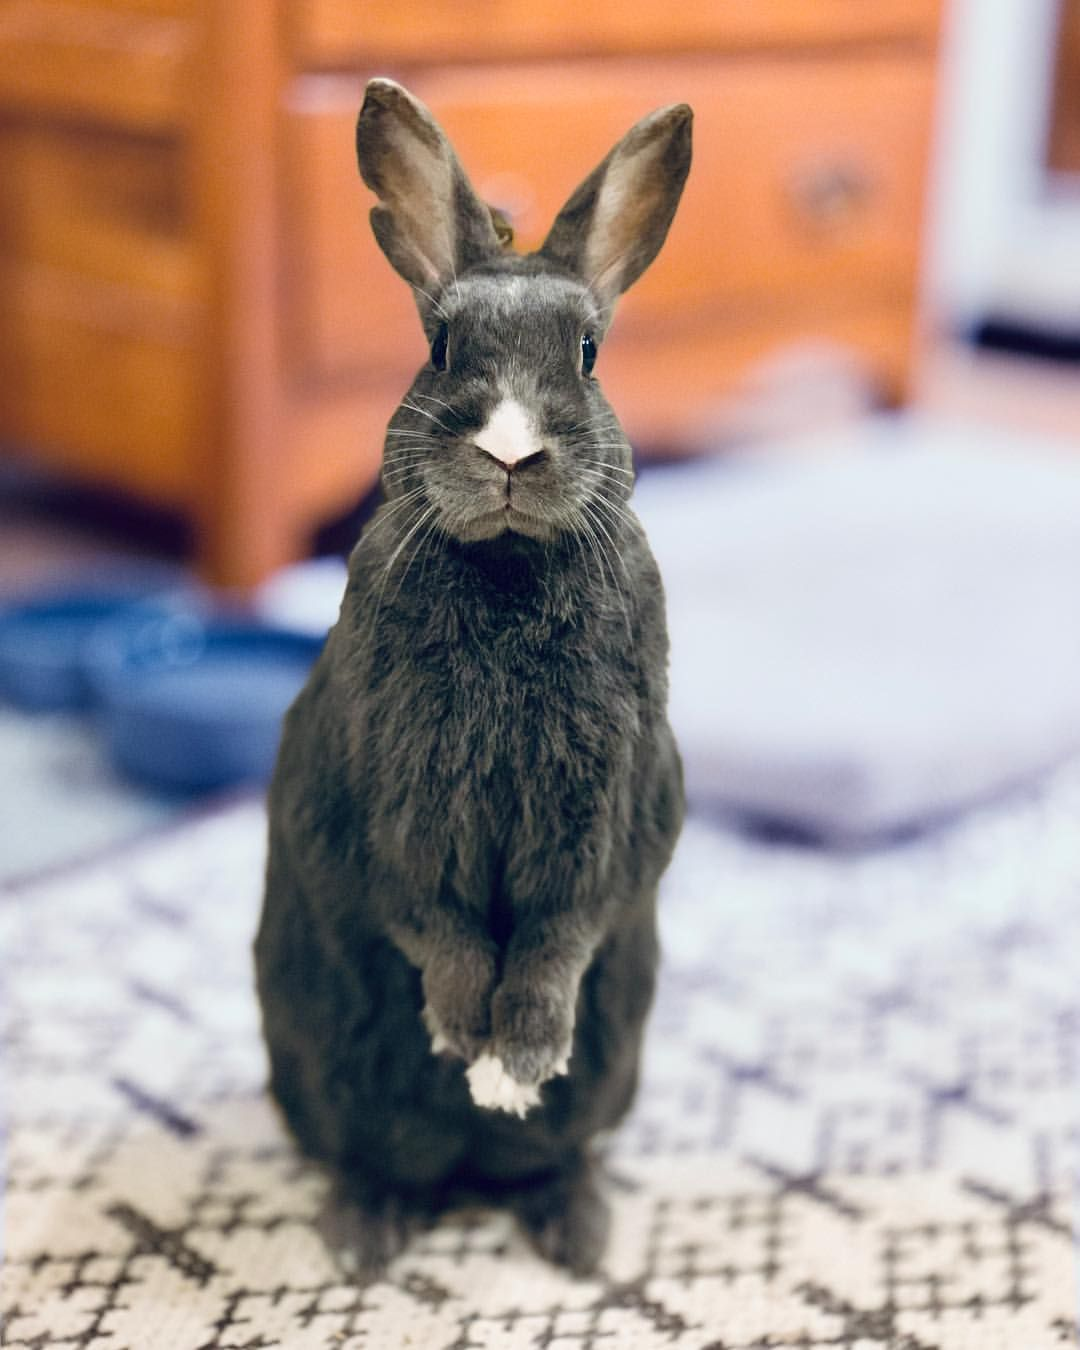 8 Things You Do That Upsets Your Bunny With Images Pet Care Dogs Sick Pets Pets